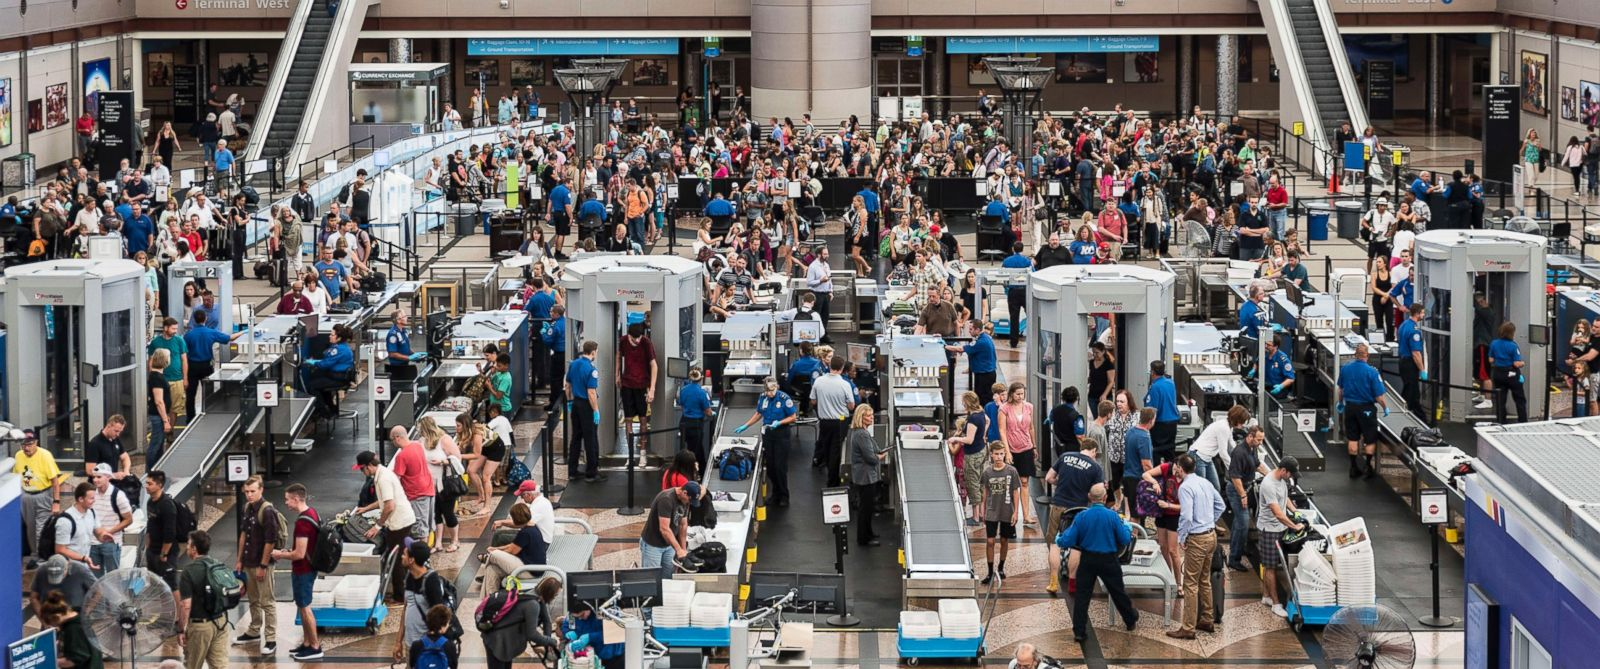 PHOTO: The TSA security check at Denver international airport is seen here.